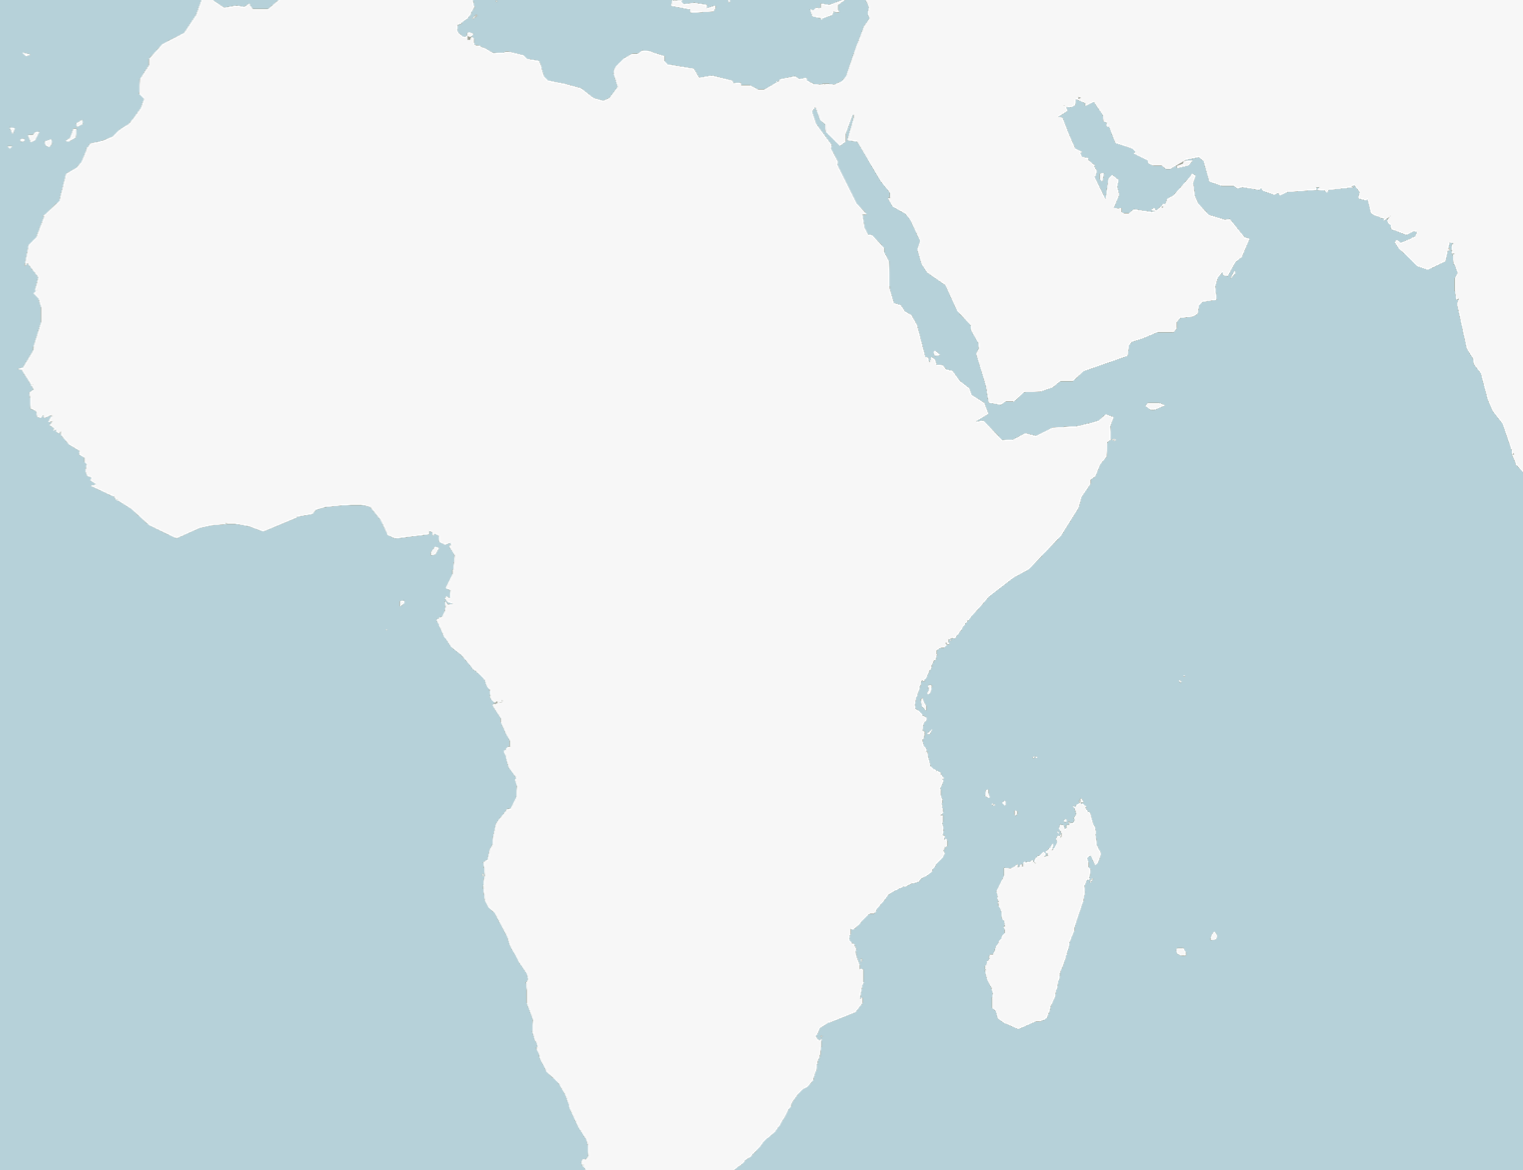 A blank map of Africa, with a blue background